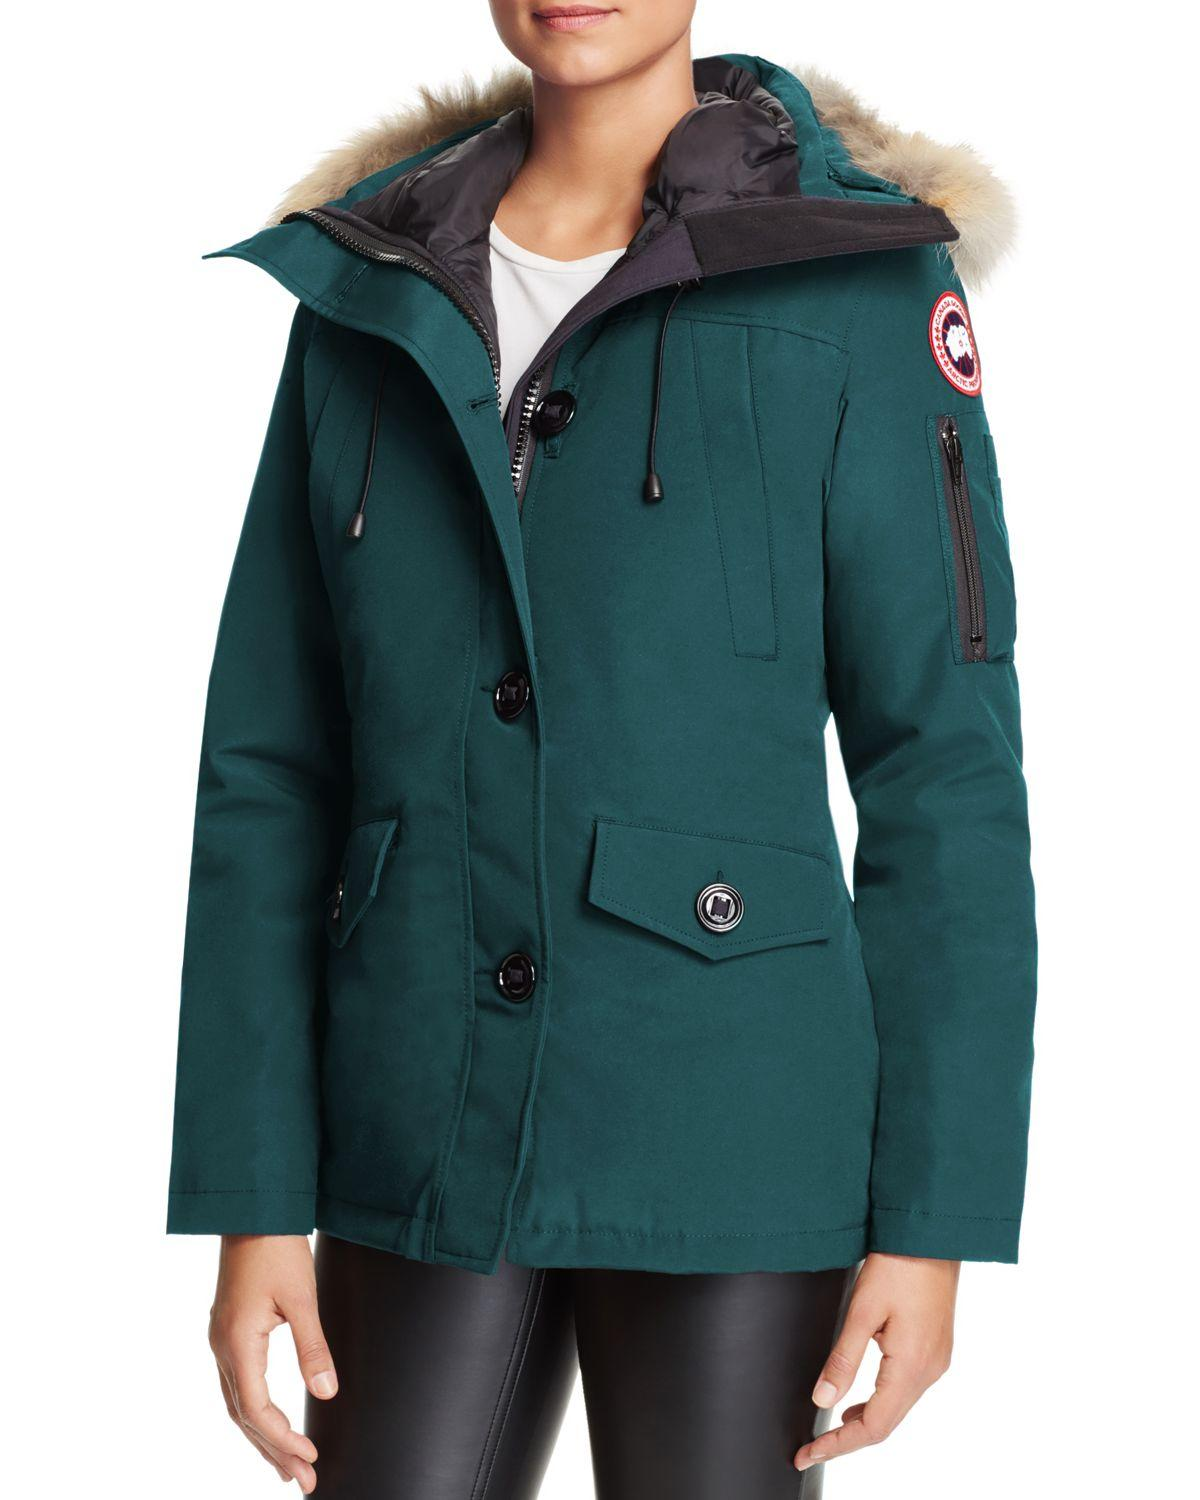 Algonquin Clothing For Women